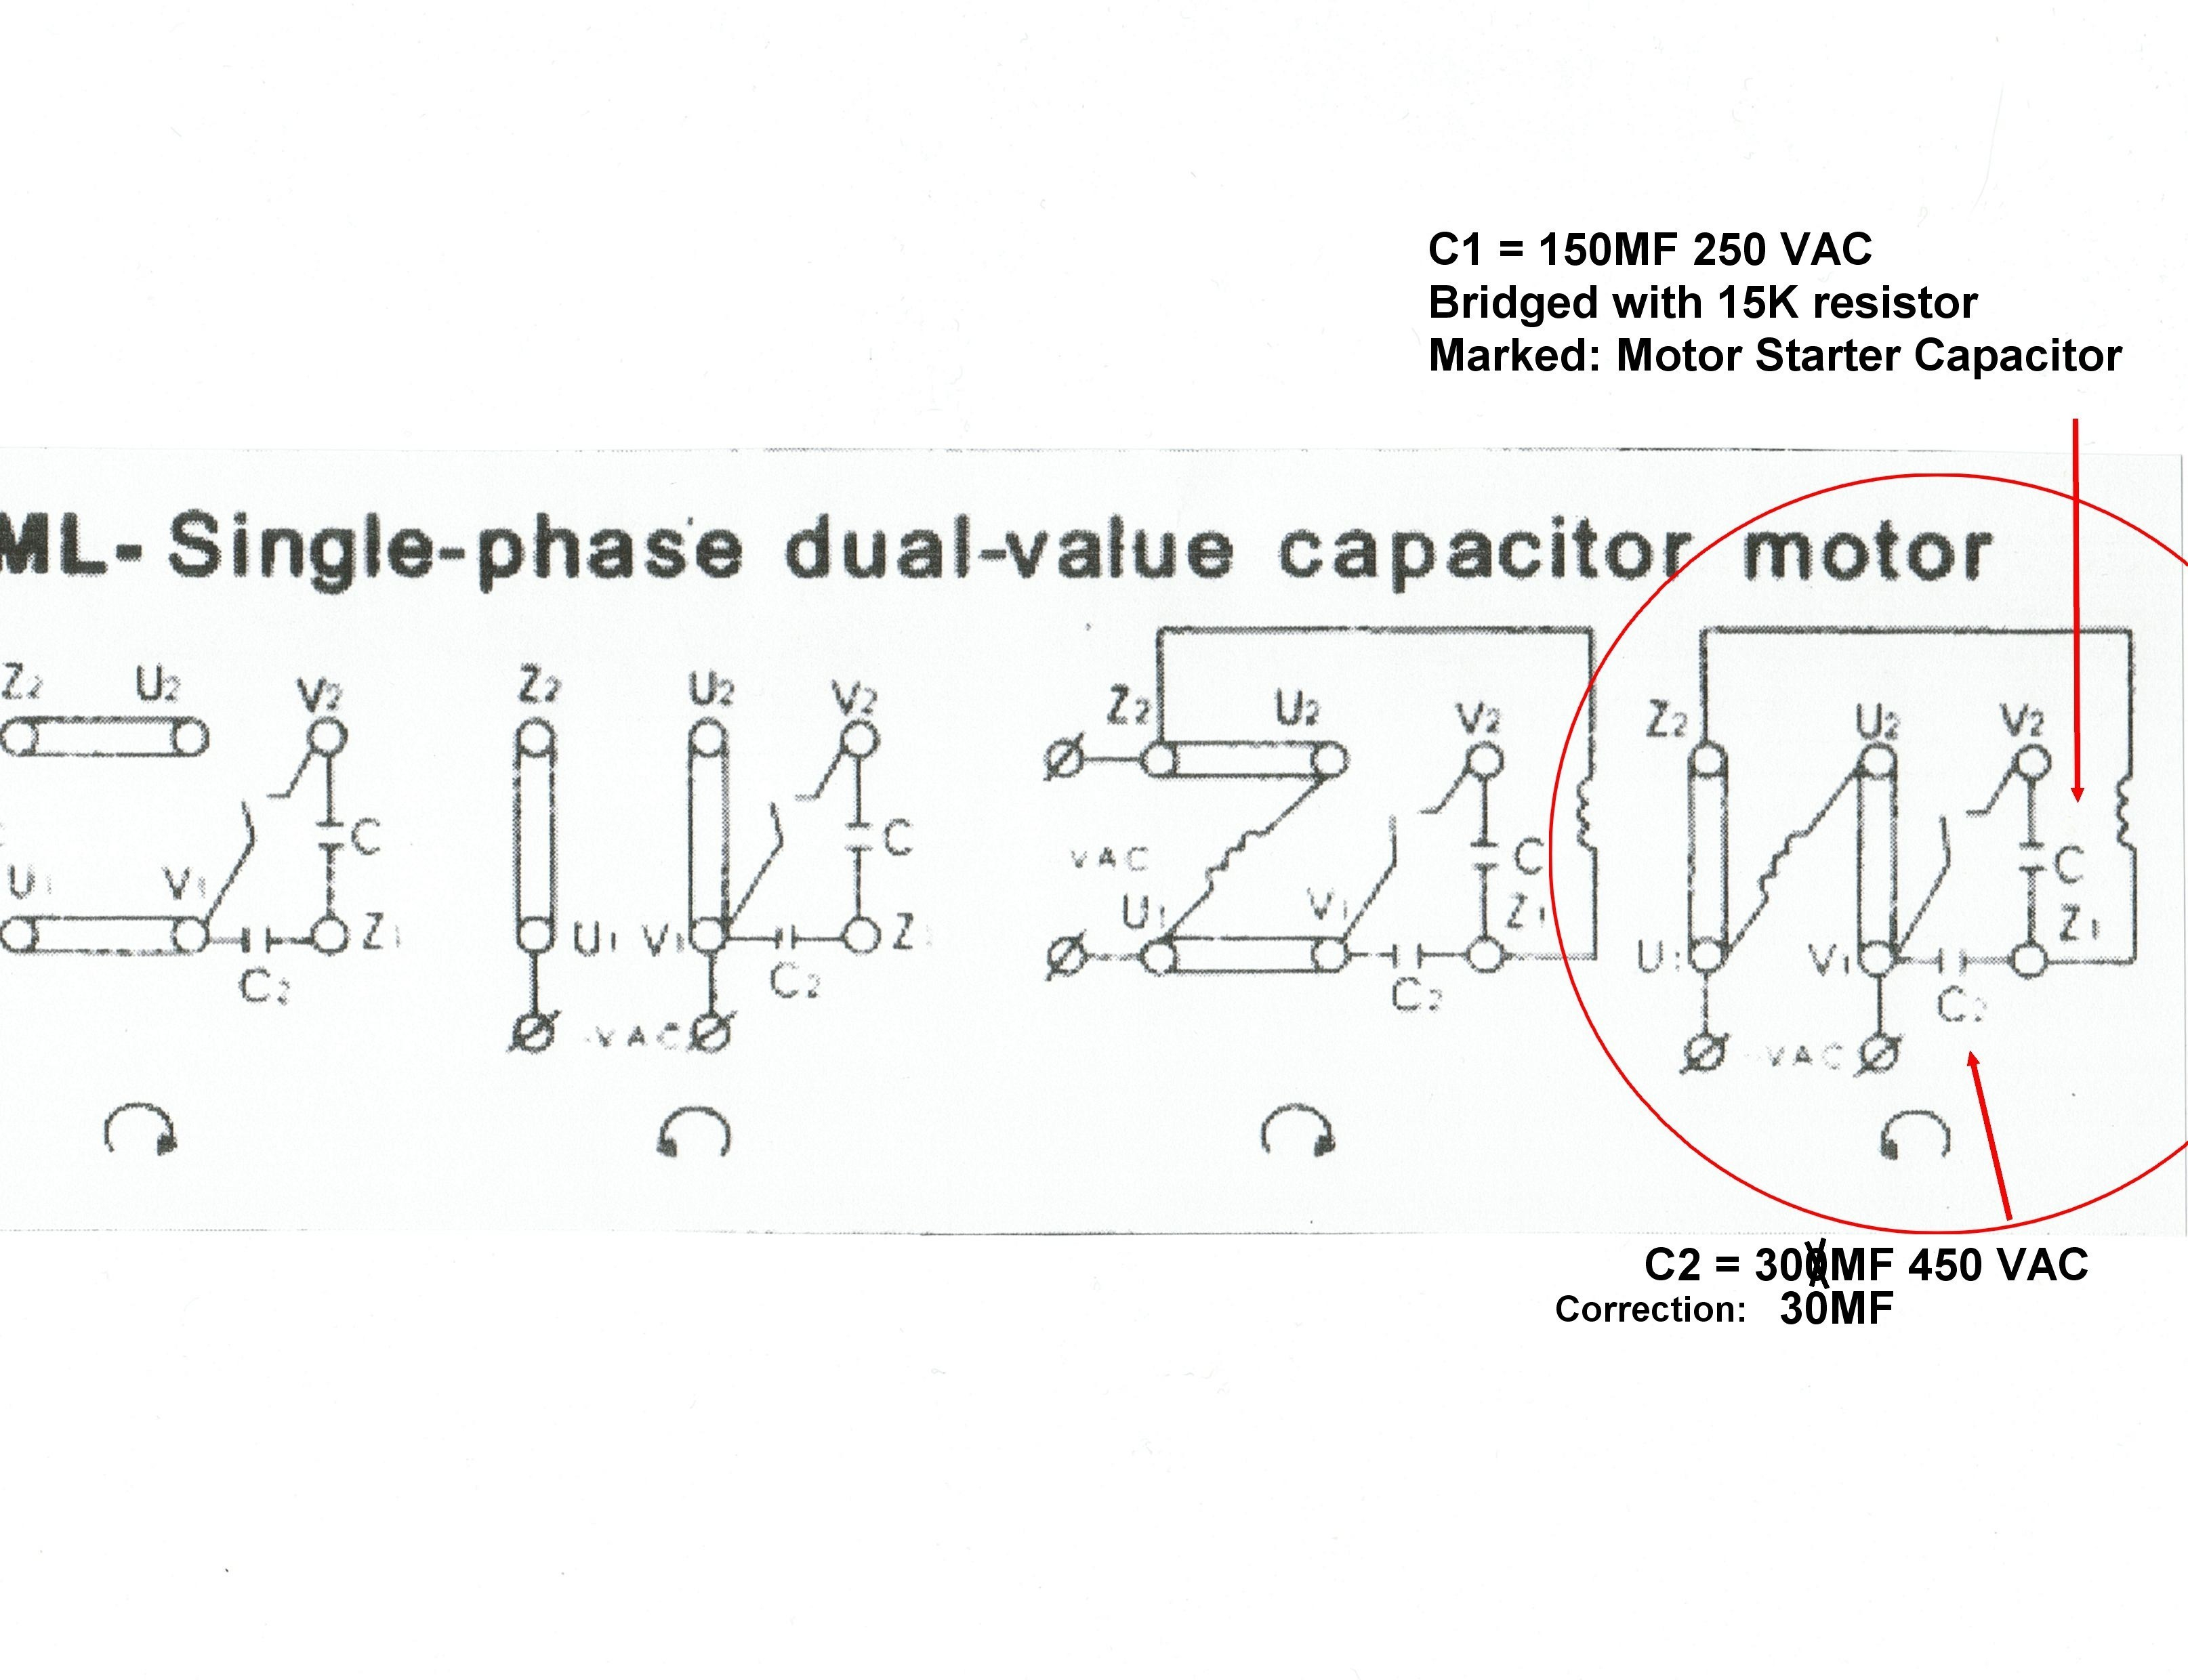 Run Capacitor Wiring Diagram For Ac Unit Cost Start Air Compressor - Motor Capacitor Wiring Diagram